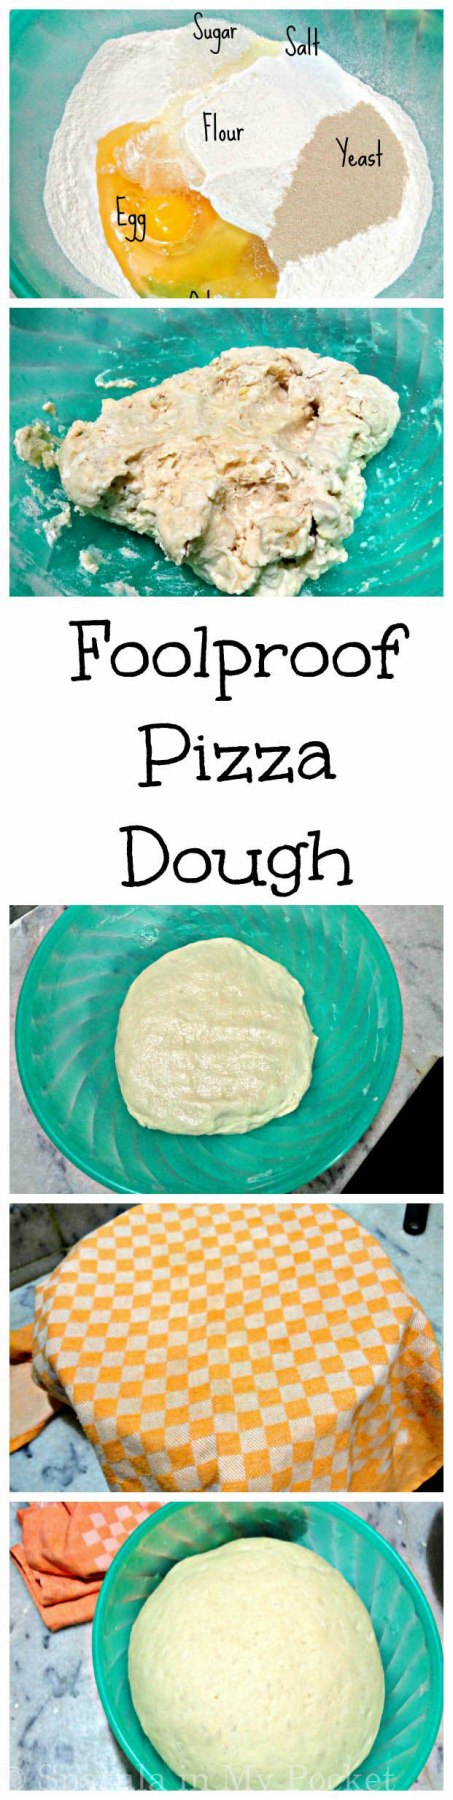 Homemade pizza dough made so simple, with guaranteed perfect results every time!